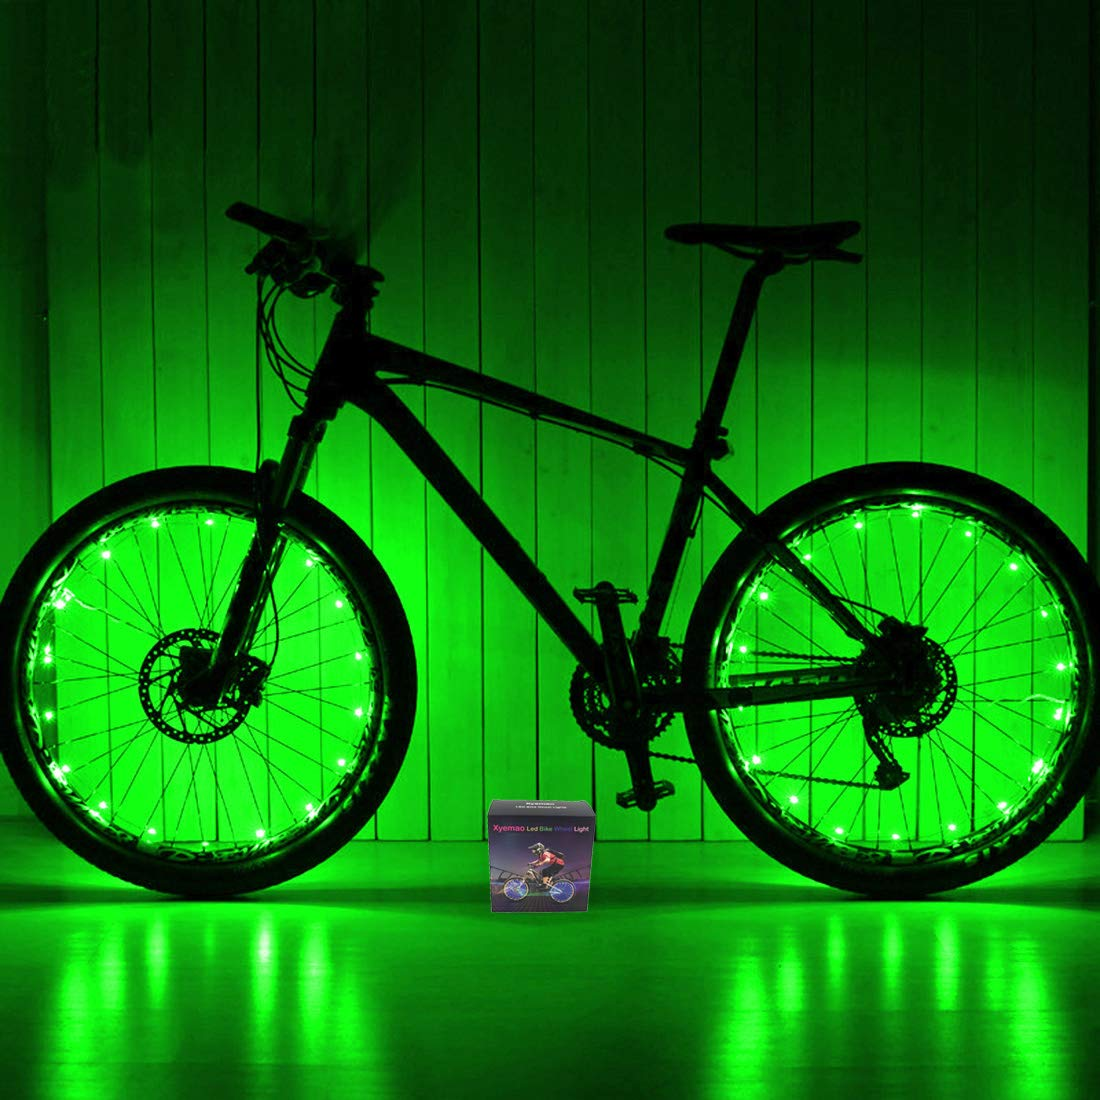 Xyemao Led Bike Wheel Lights, 2 Tire Pack Waterproof Bright Bicycle Light Strip, Ultimate Safety Style Lights, Cool Kids Bike Accessories, 3 AA Battery Include